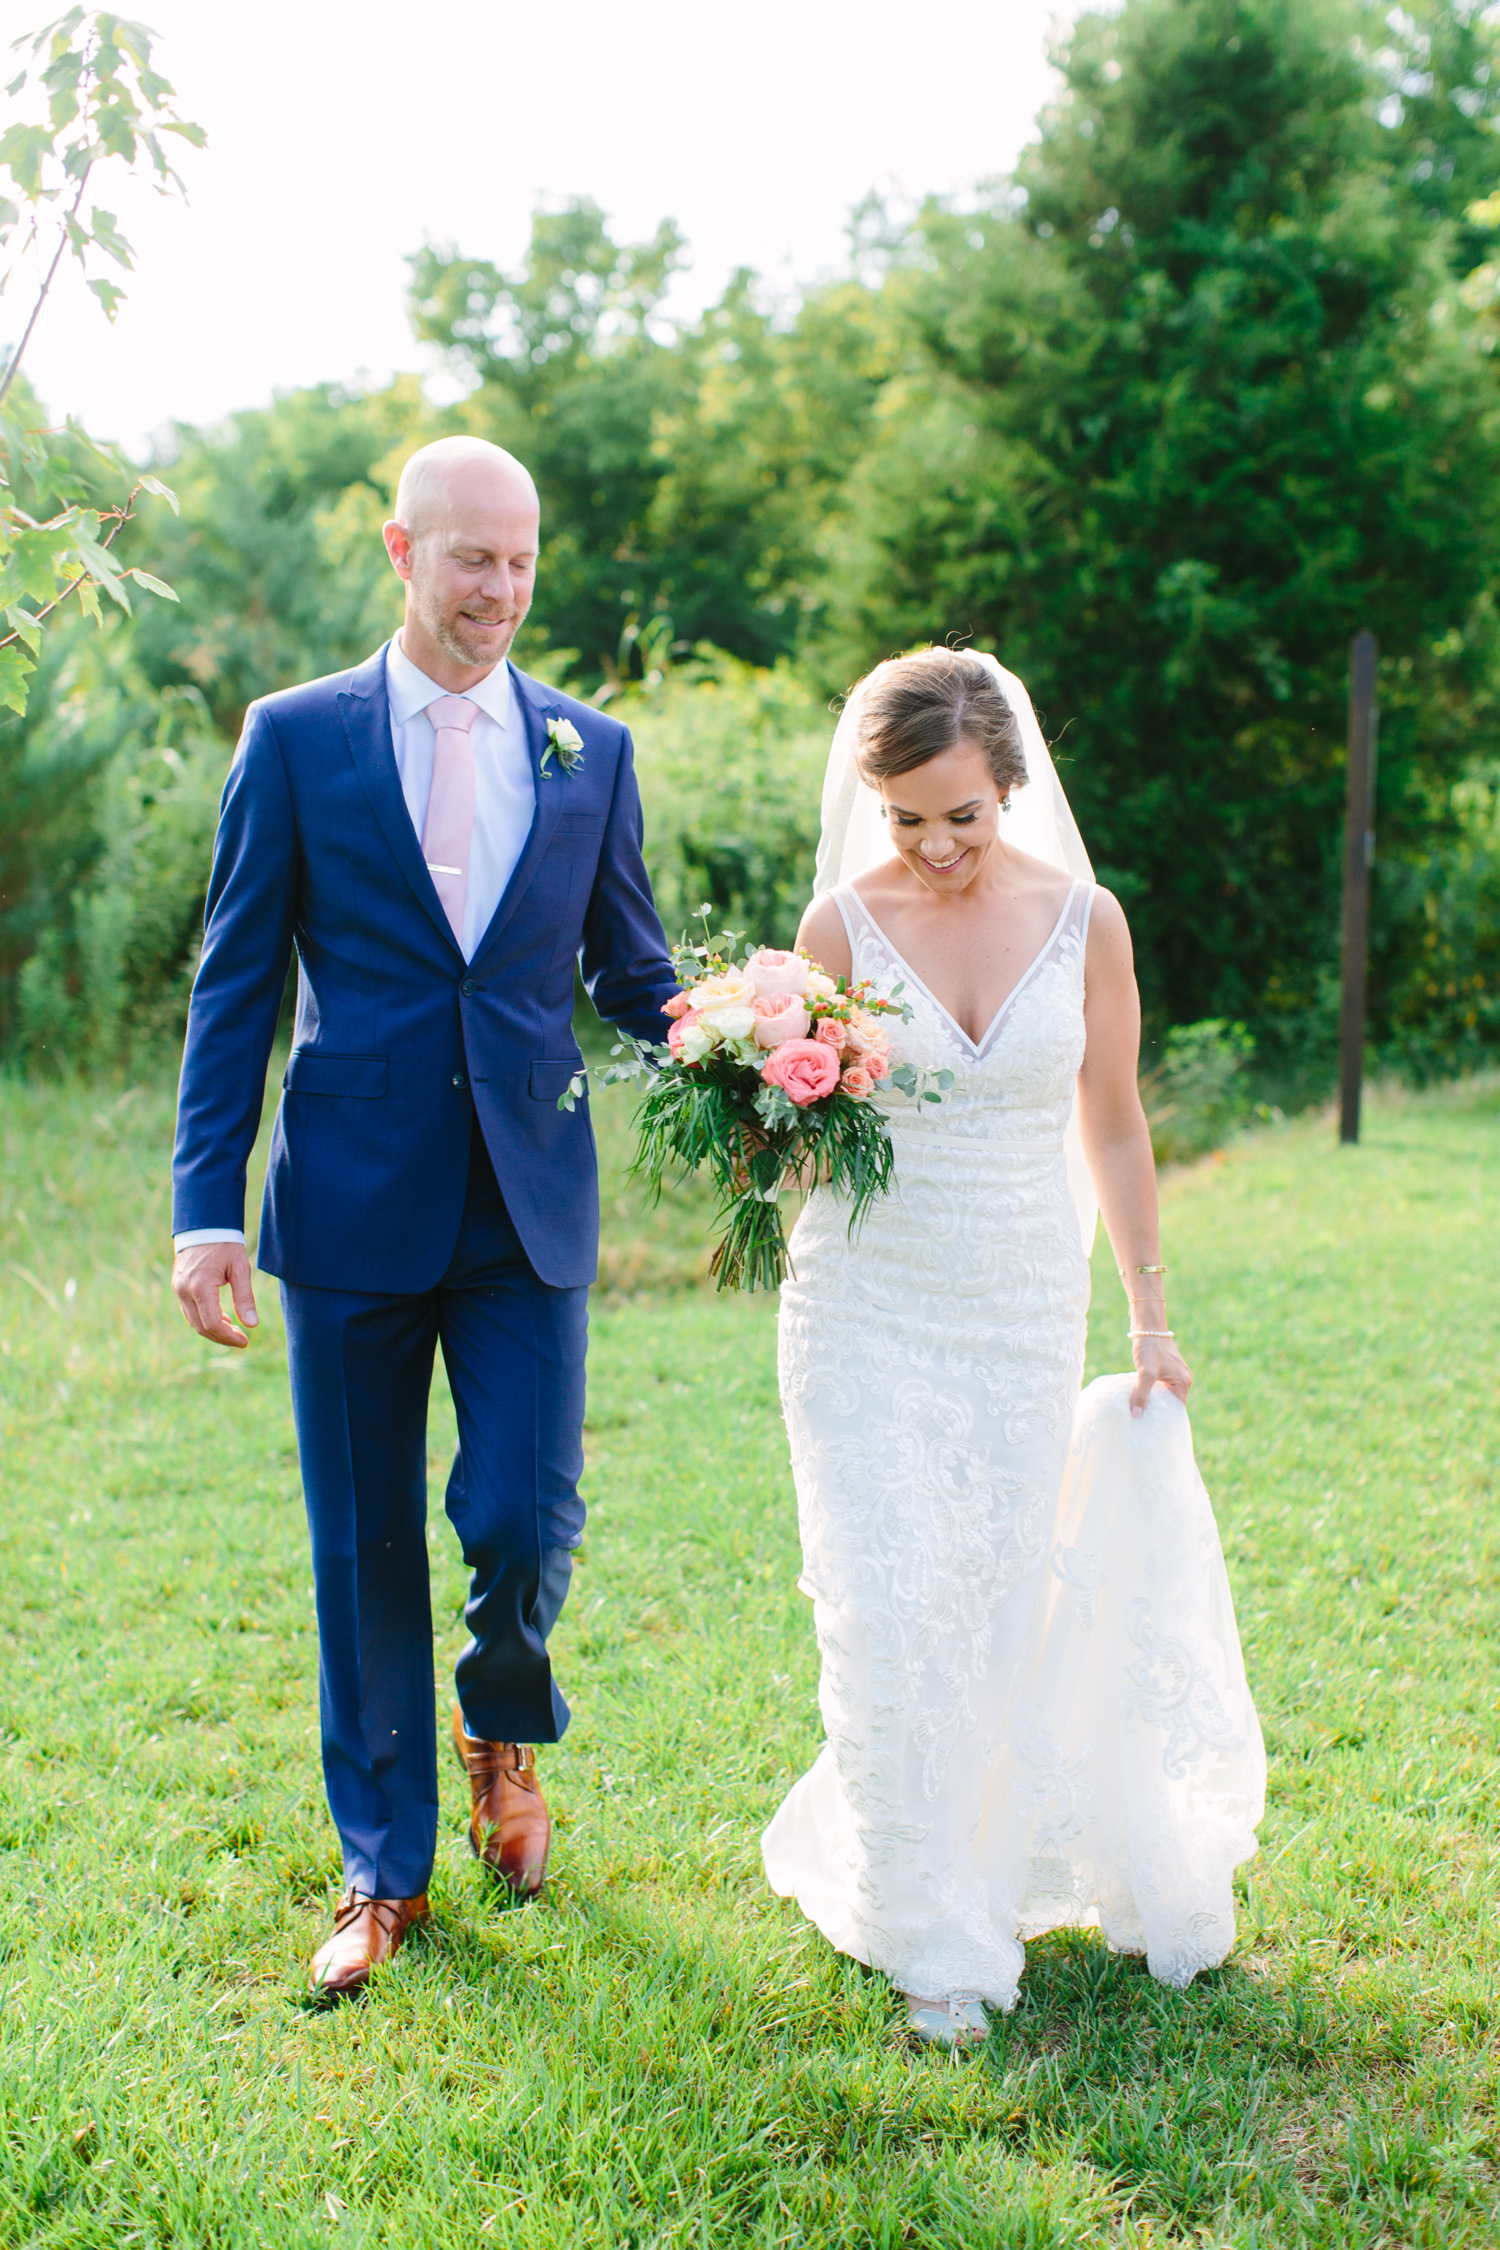 Romantic Outdoor Wedding // Tennessee Photographer // Suzy Collins Photography // The Olde Farm